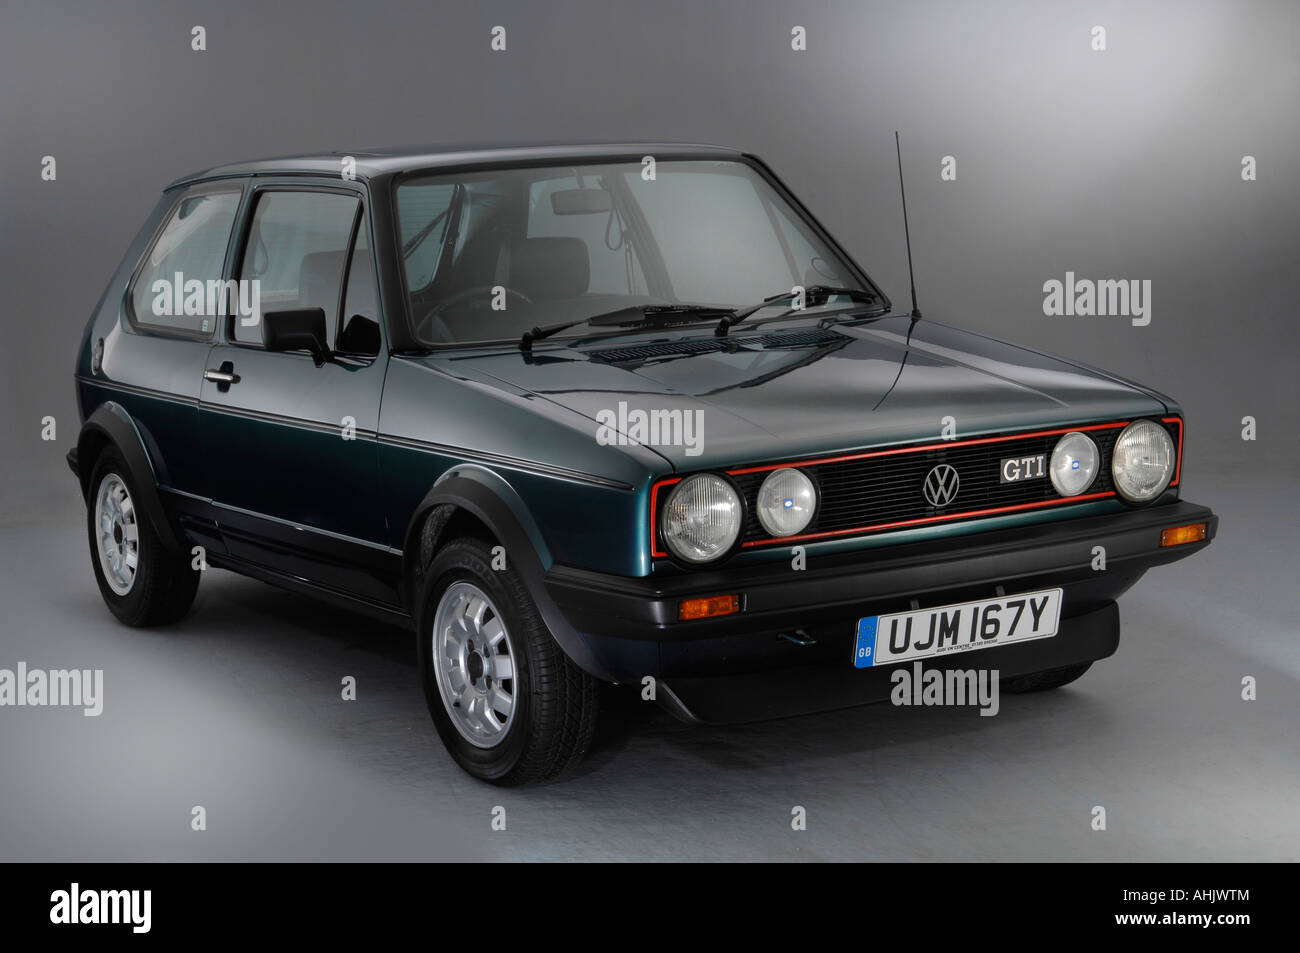 Golf Mk1 Stock Photos & Golf Mk1 Stock Images - Alamy